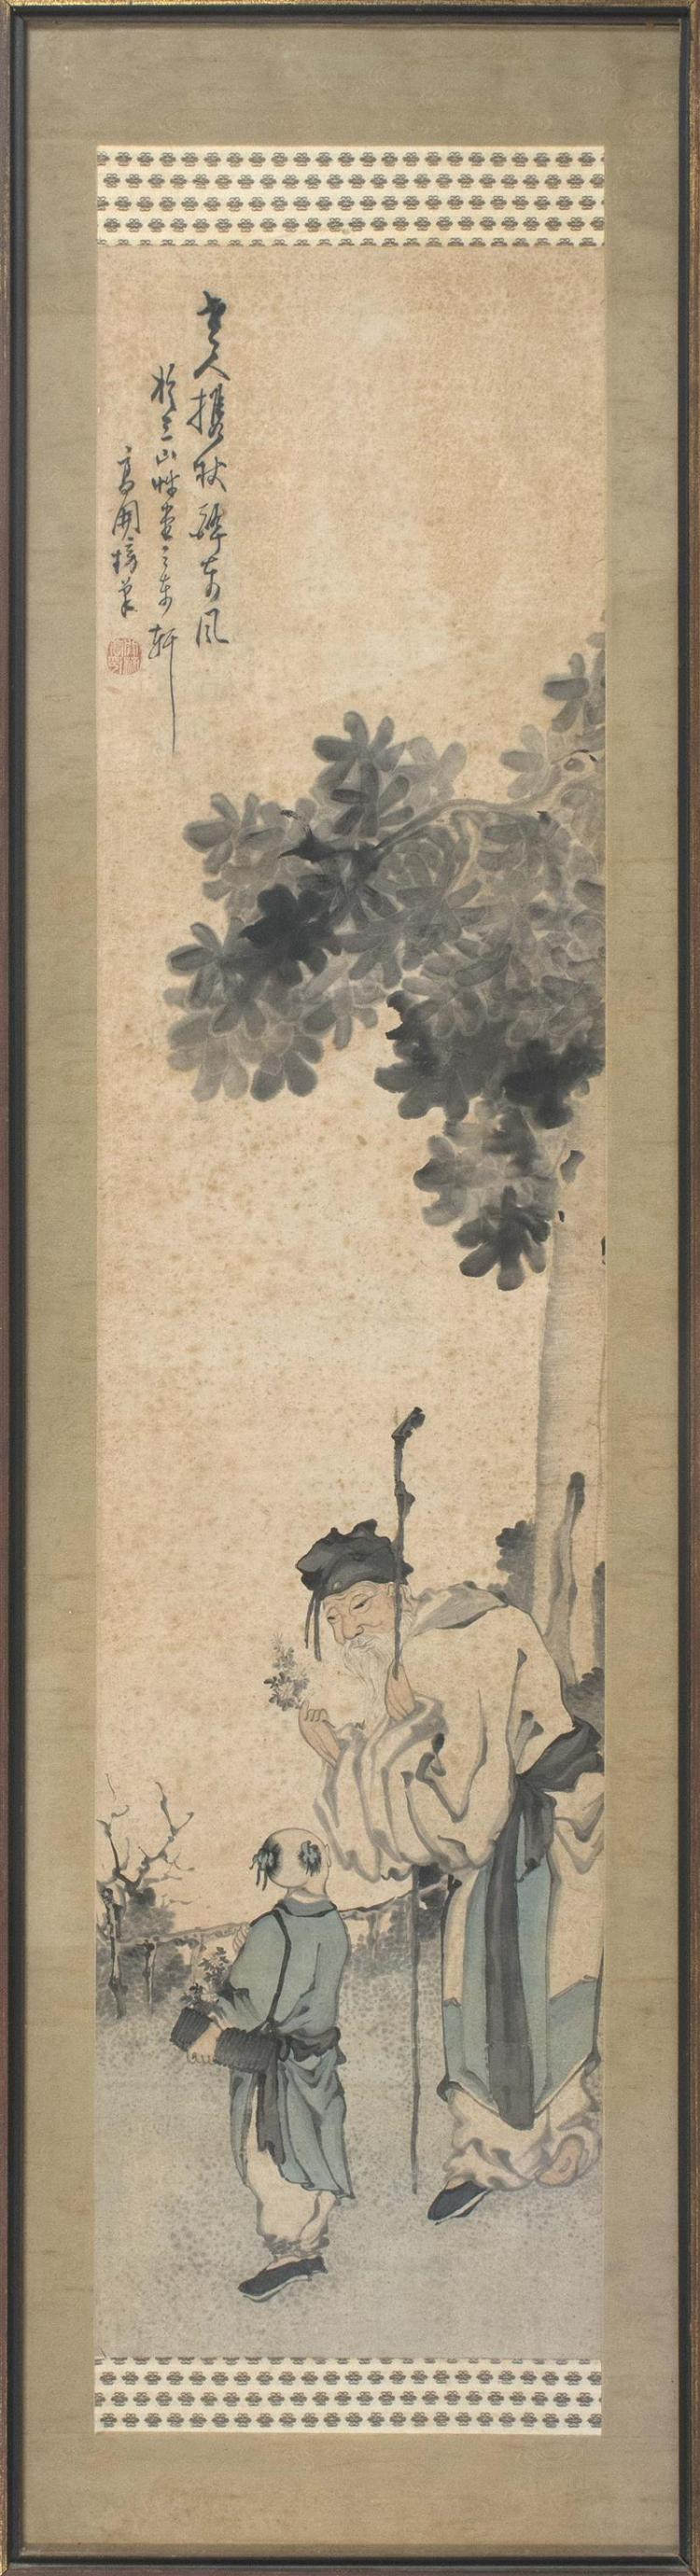 FRAMED SCROLL PAINTING Depicting a sage and youth beneath a tree. 50.5